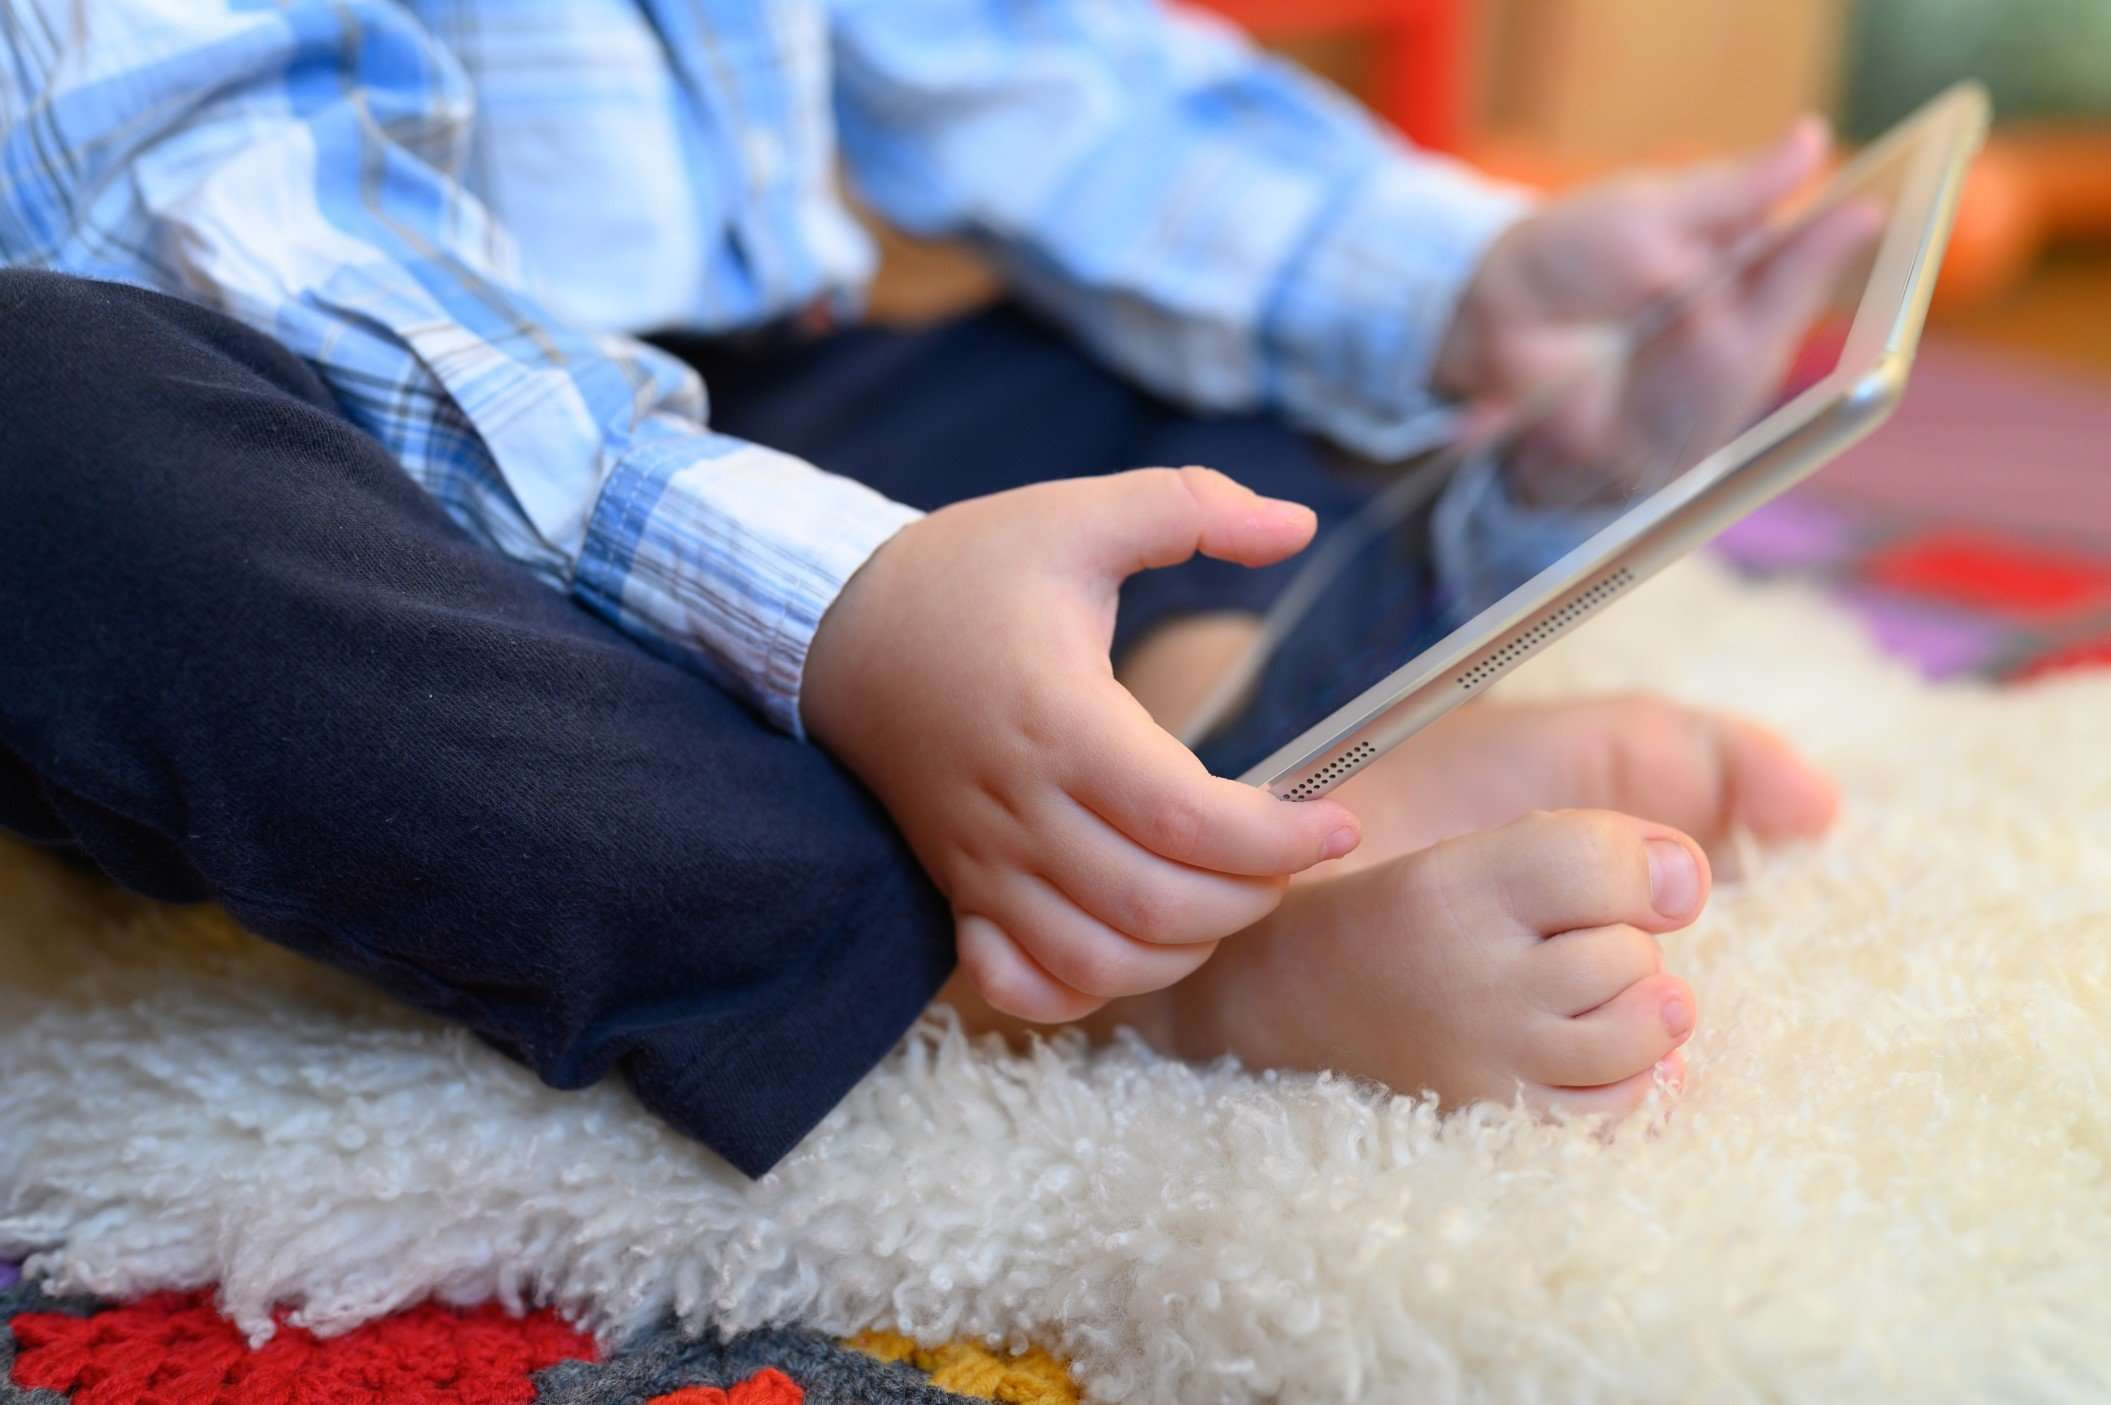 3 Ways to Keep Your Child Entertained and Away From Screens